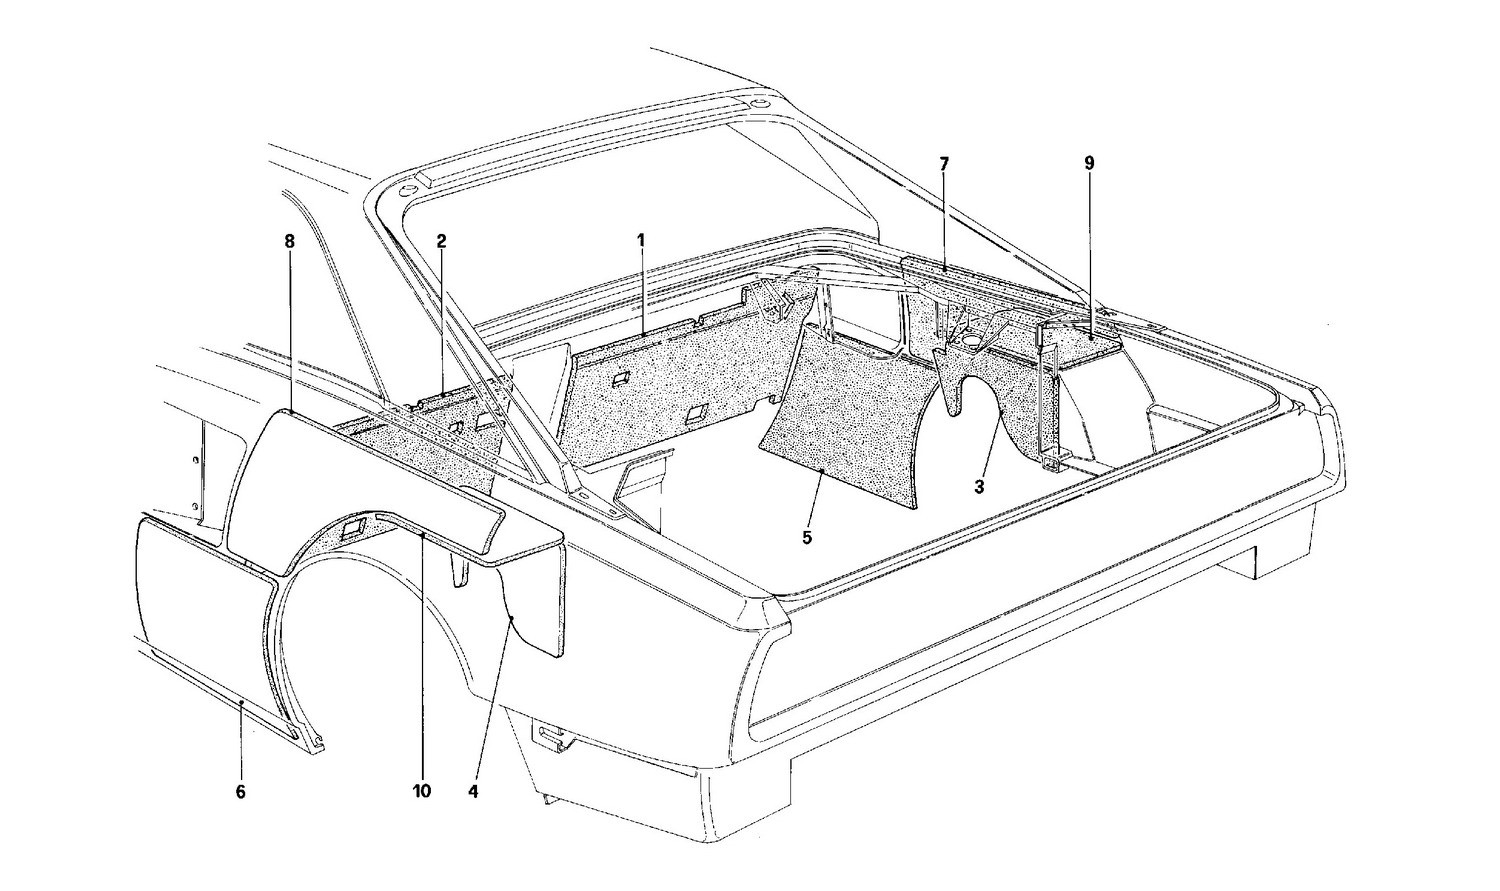 Engine compartment insulation - Coupé - For CH version cars